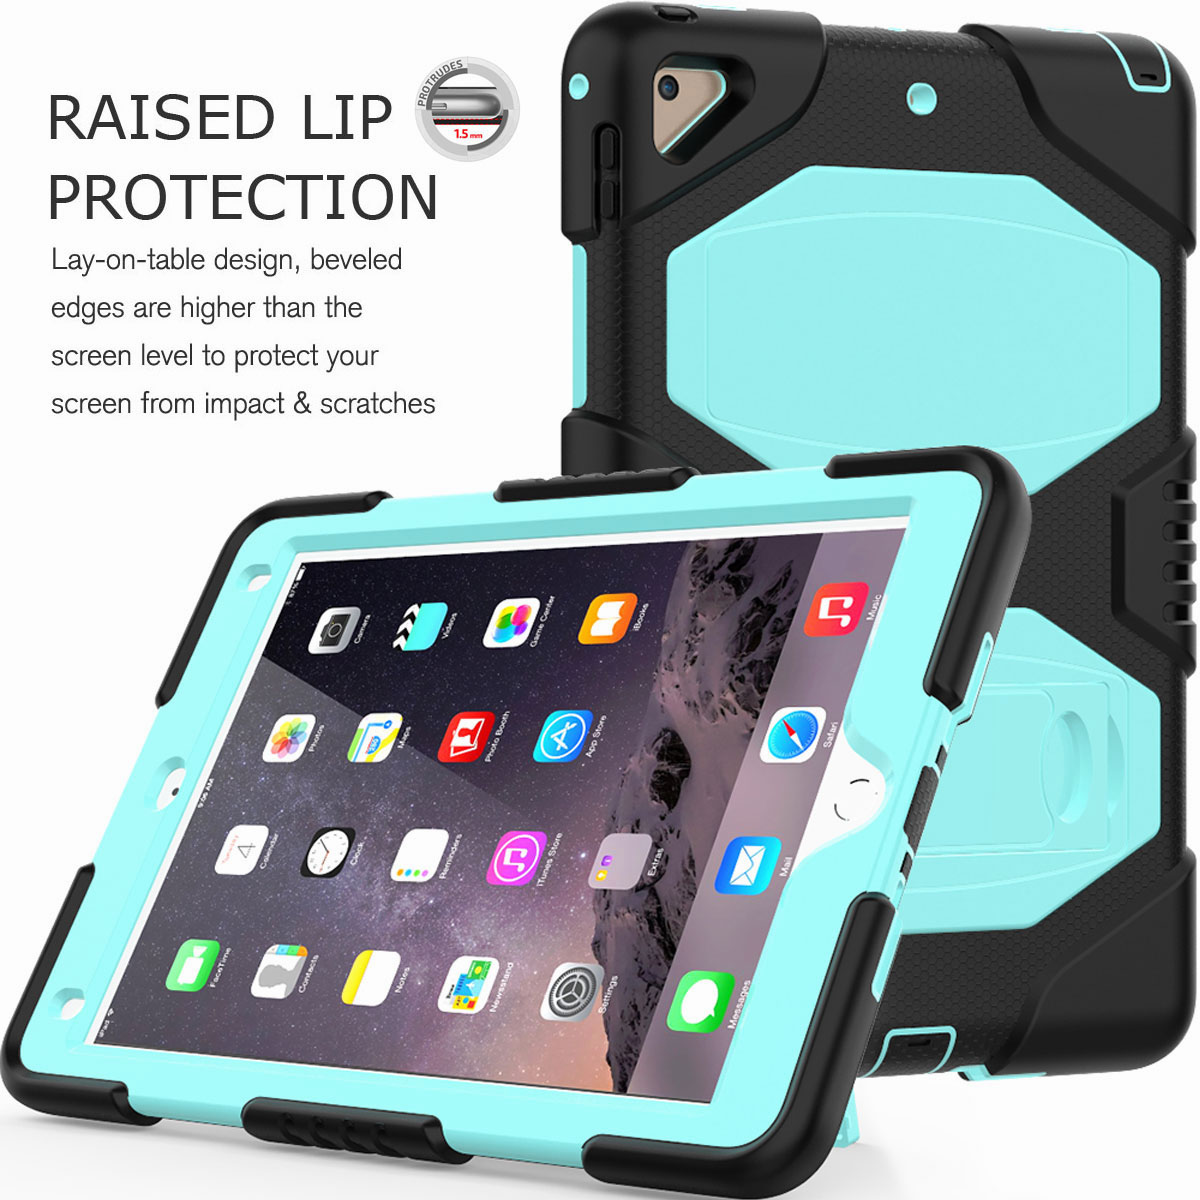 Hybrid-Rubber-Heavy-Duty-Shockproof-Case-Cover-For-iPad-9-7-6th-Generation-2018 thumbnail 39